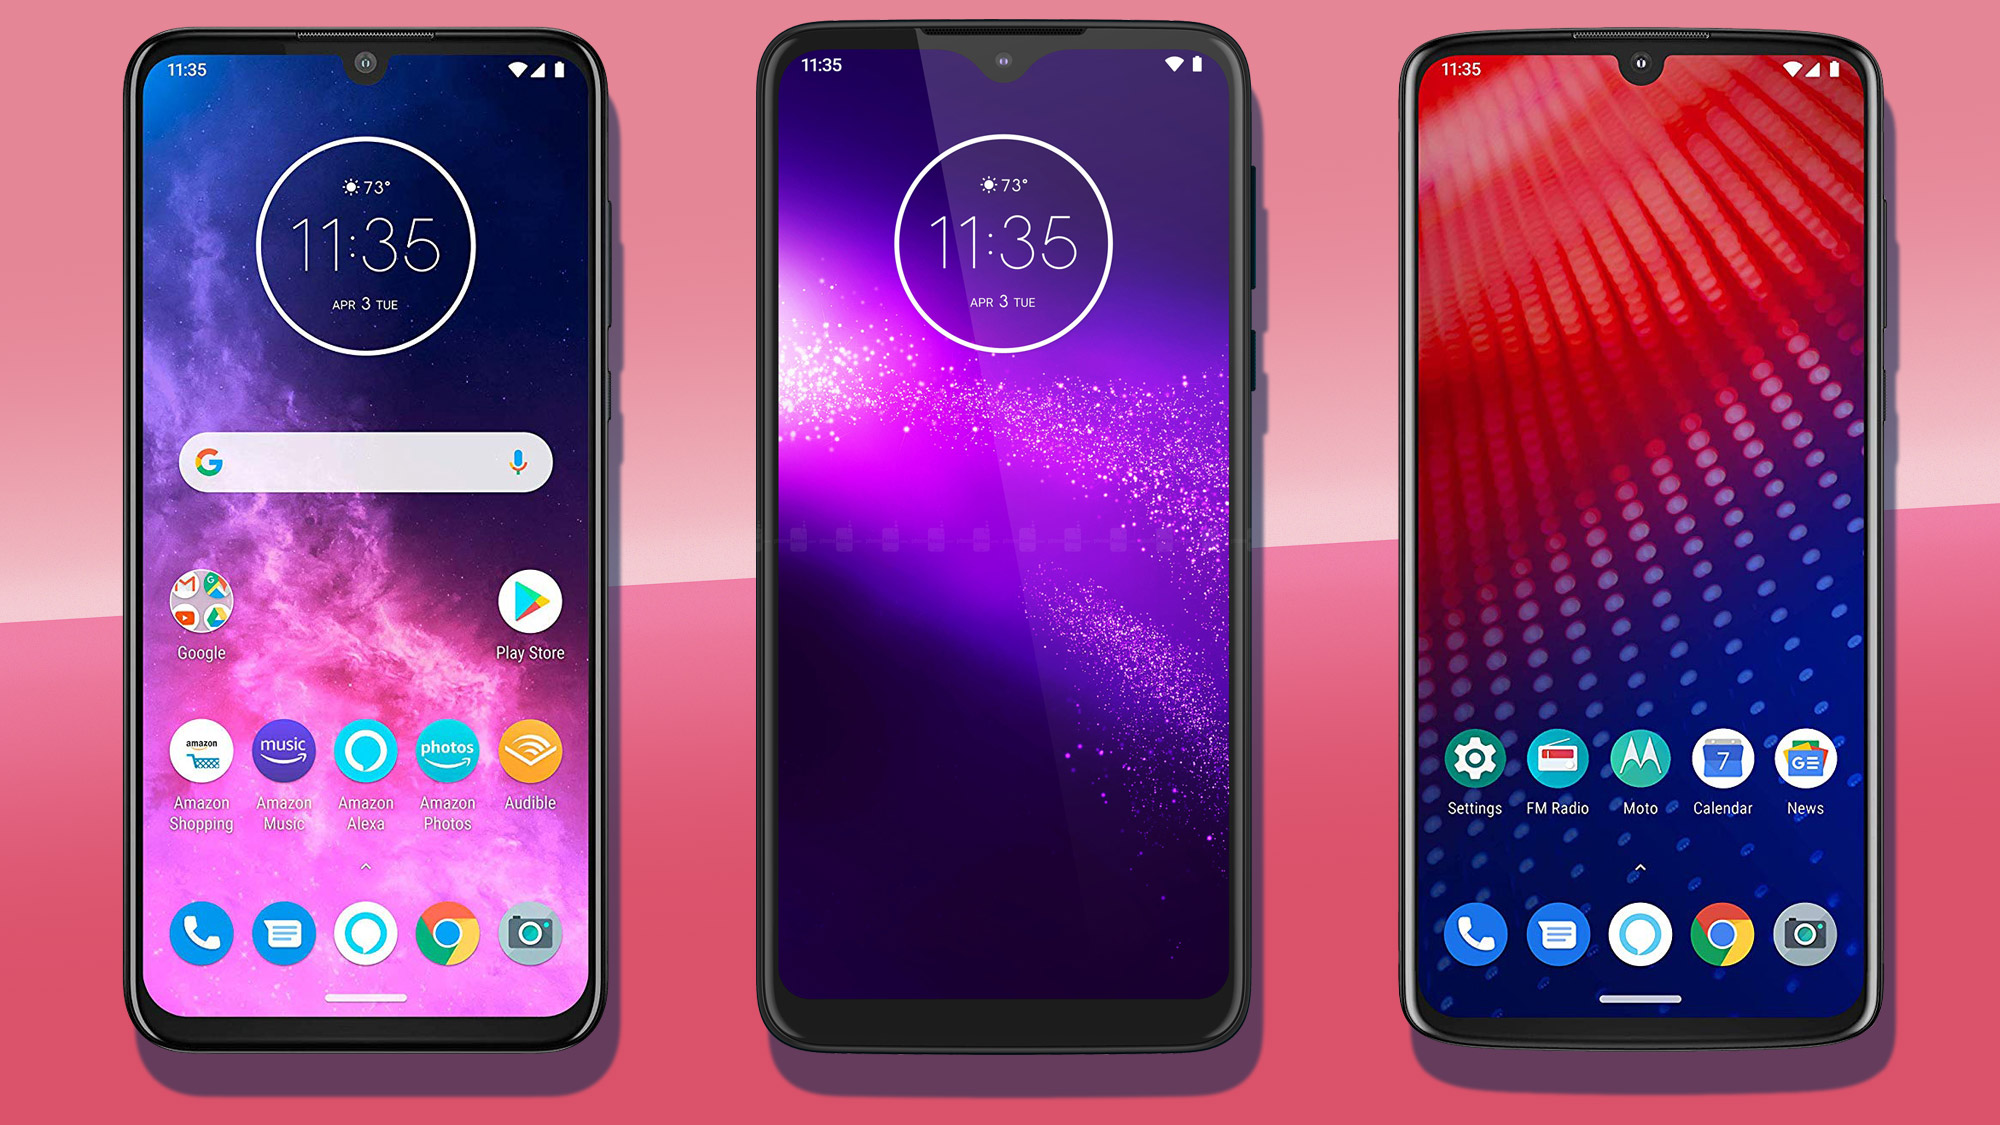 MOTOROLA MOBILITY: Discover our new unlocked Android phones from Motorola and stay informed about our offers and promotions